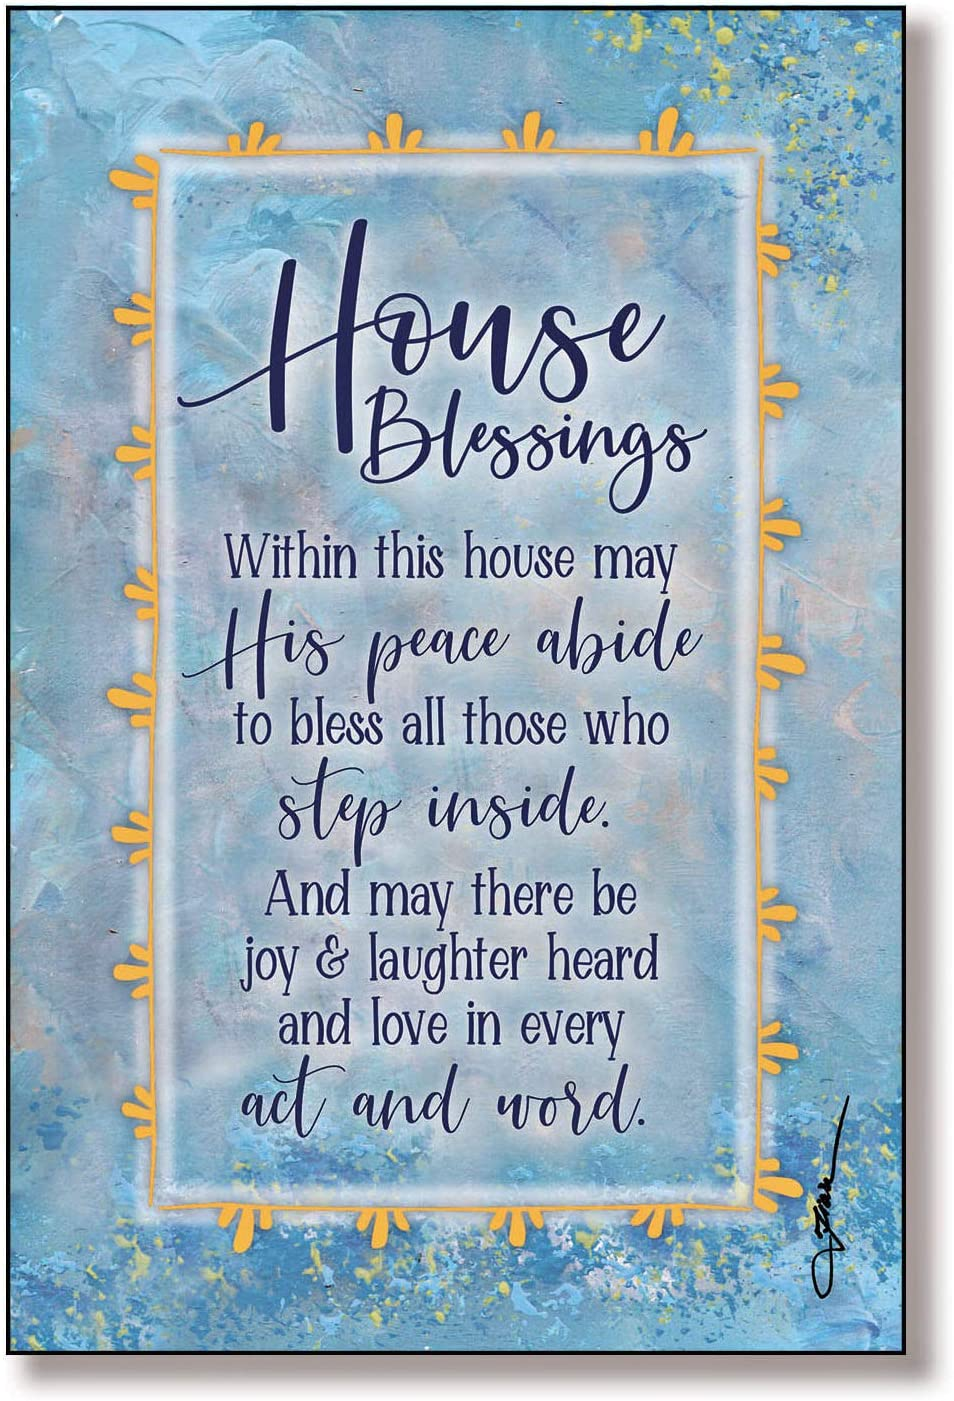 House Blessing Wood Plaque with Inspiring Quotes 6x9 - Vertical Frame Wall & Tabletop Decoration | Easel & Hanging Hook | Within This House May His Peace Abide, to Bless All Those who Step Inside